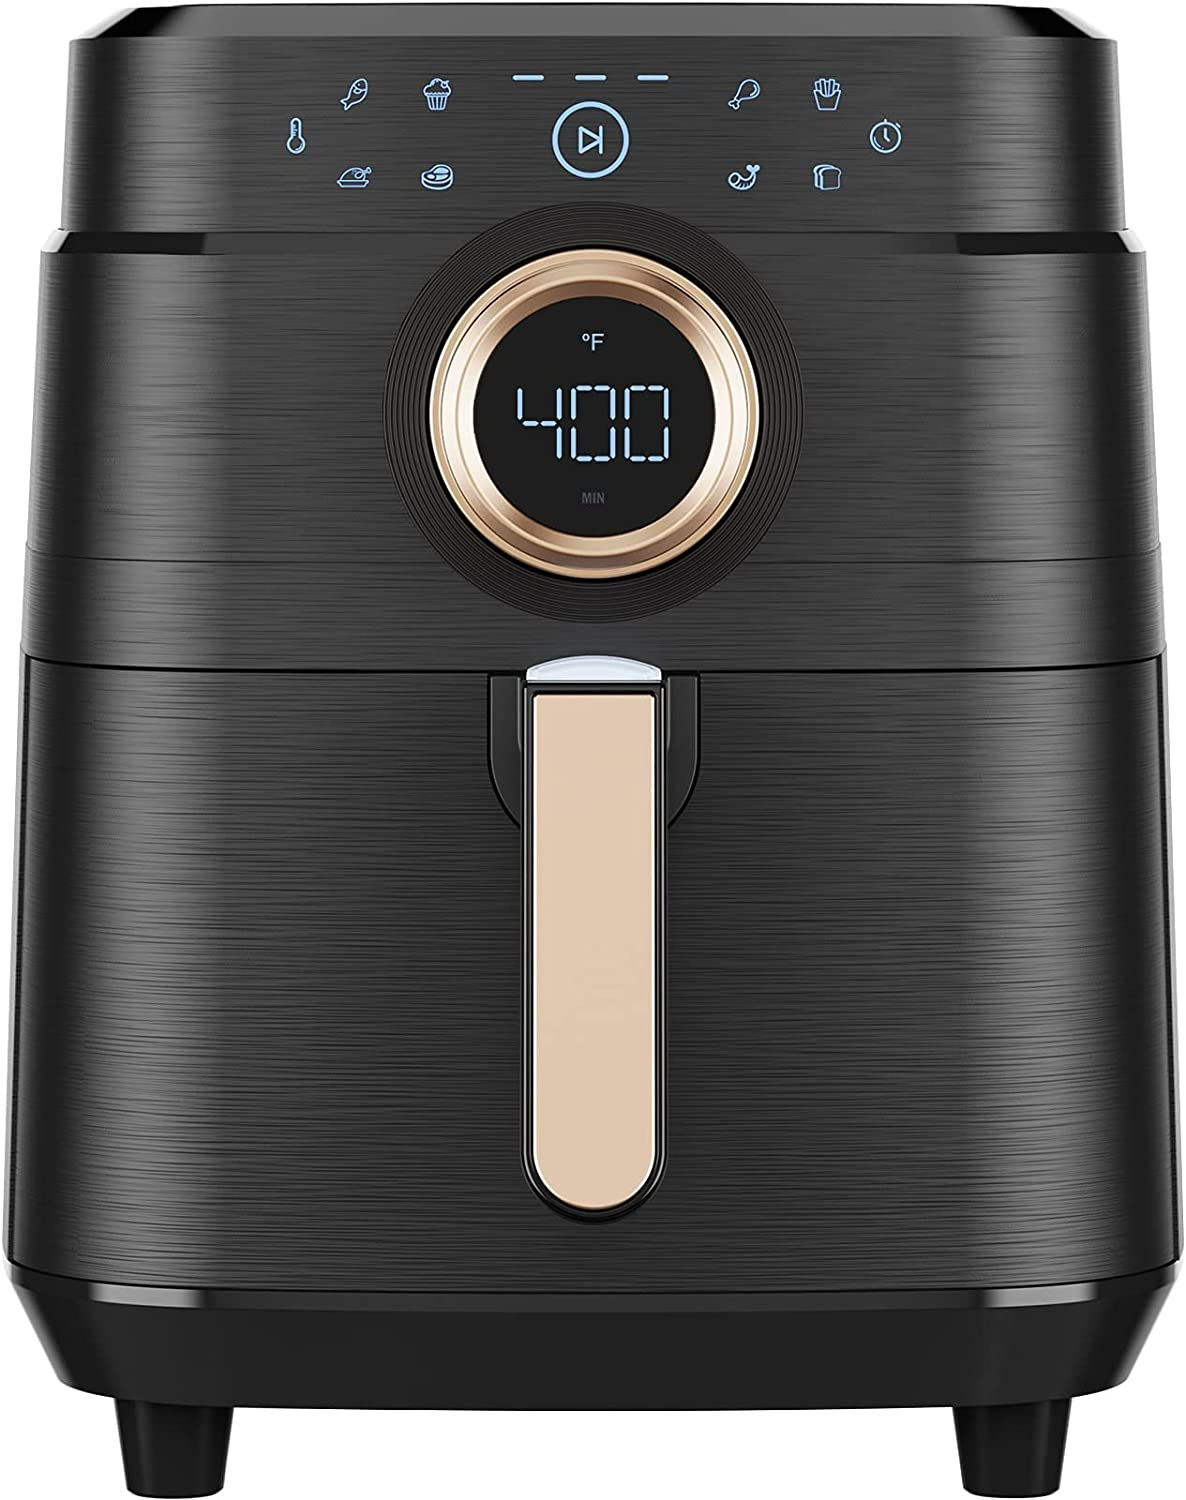 Air Fryer, 5.8 QT Airfryer Oven Large Air Fryer 1700W 8-in-1 with Touch Screen Air Fryers Detachable Dishwasher Safe Nonstick Basket Freidora de Aire 36 Recipes BPA & PFOA Free Black Air Fryer